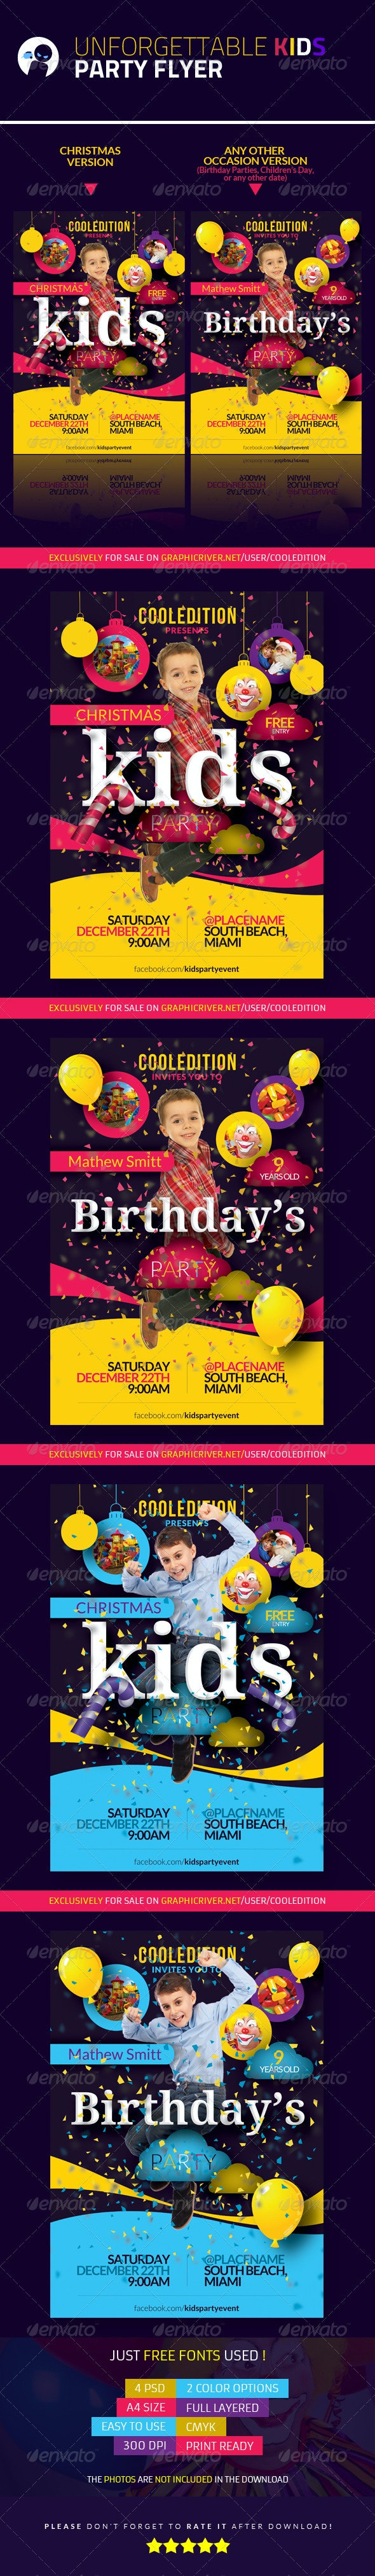 Unforgettable Kids Party Flyer - Clubs & Parties Events